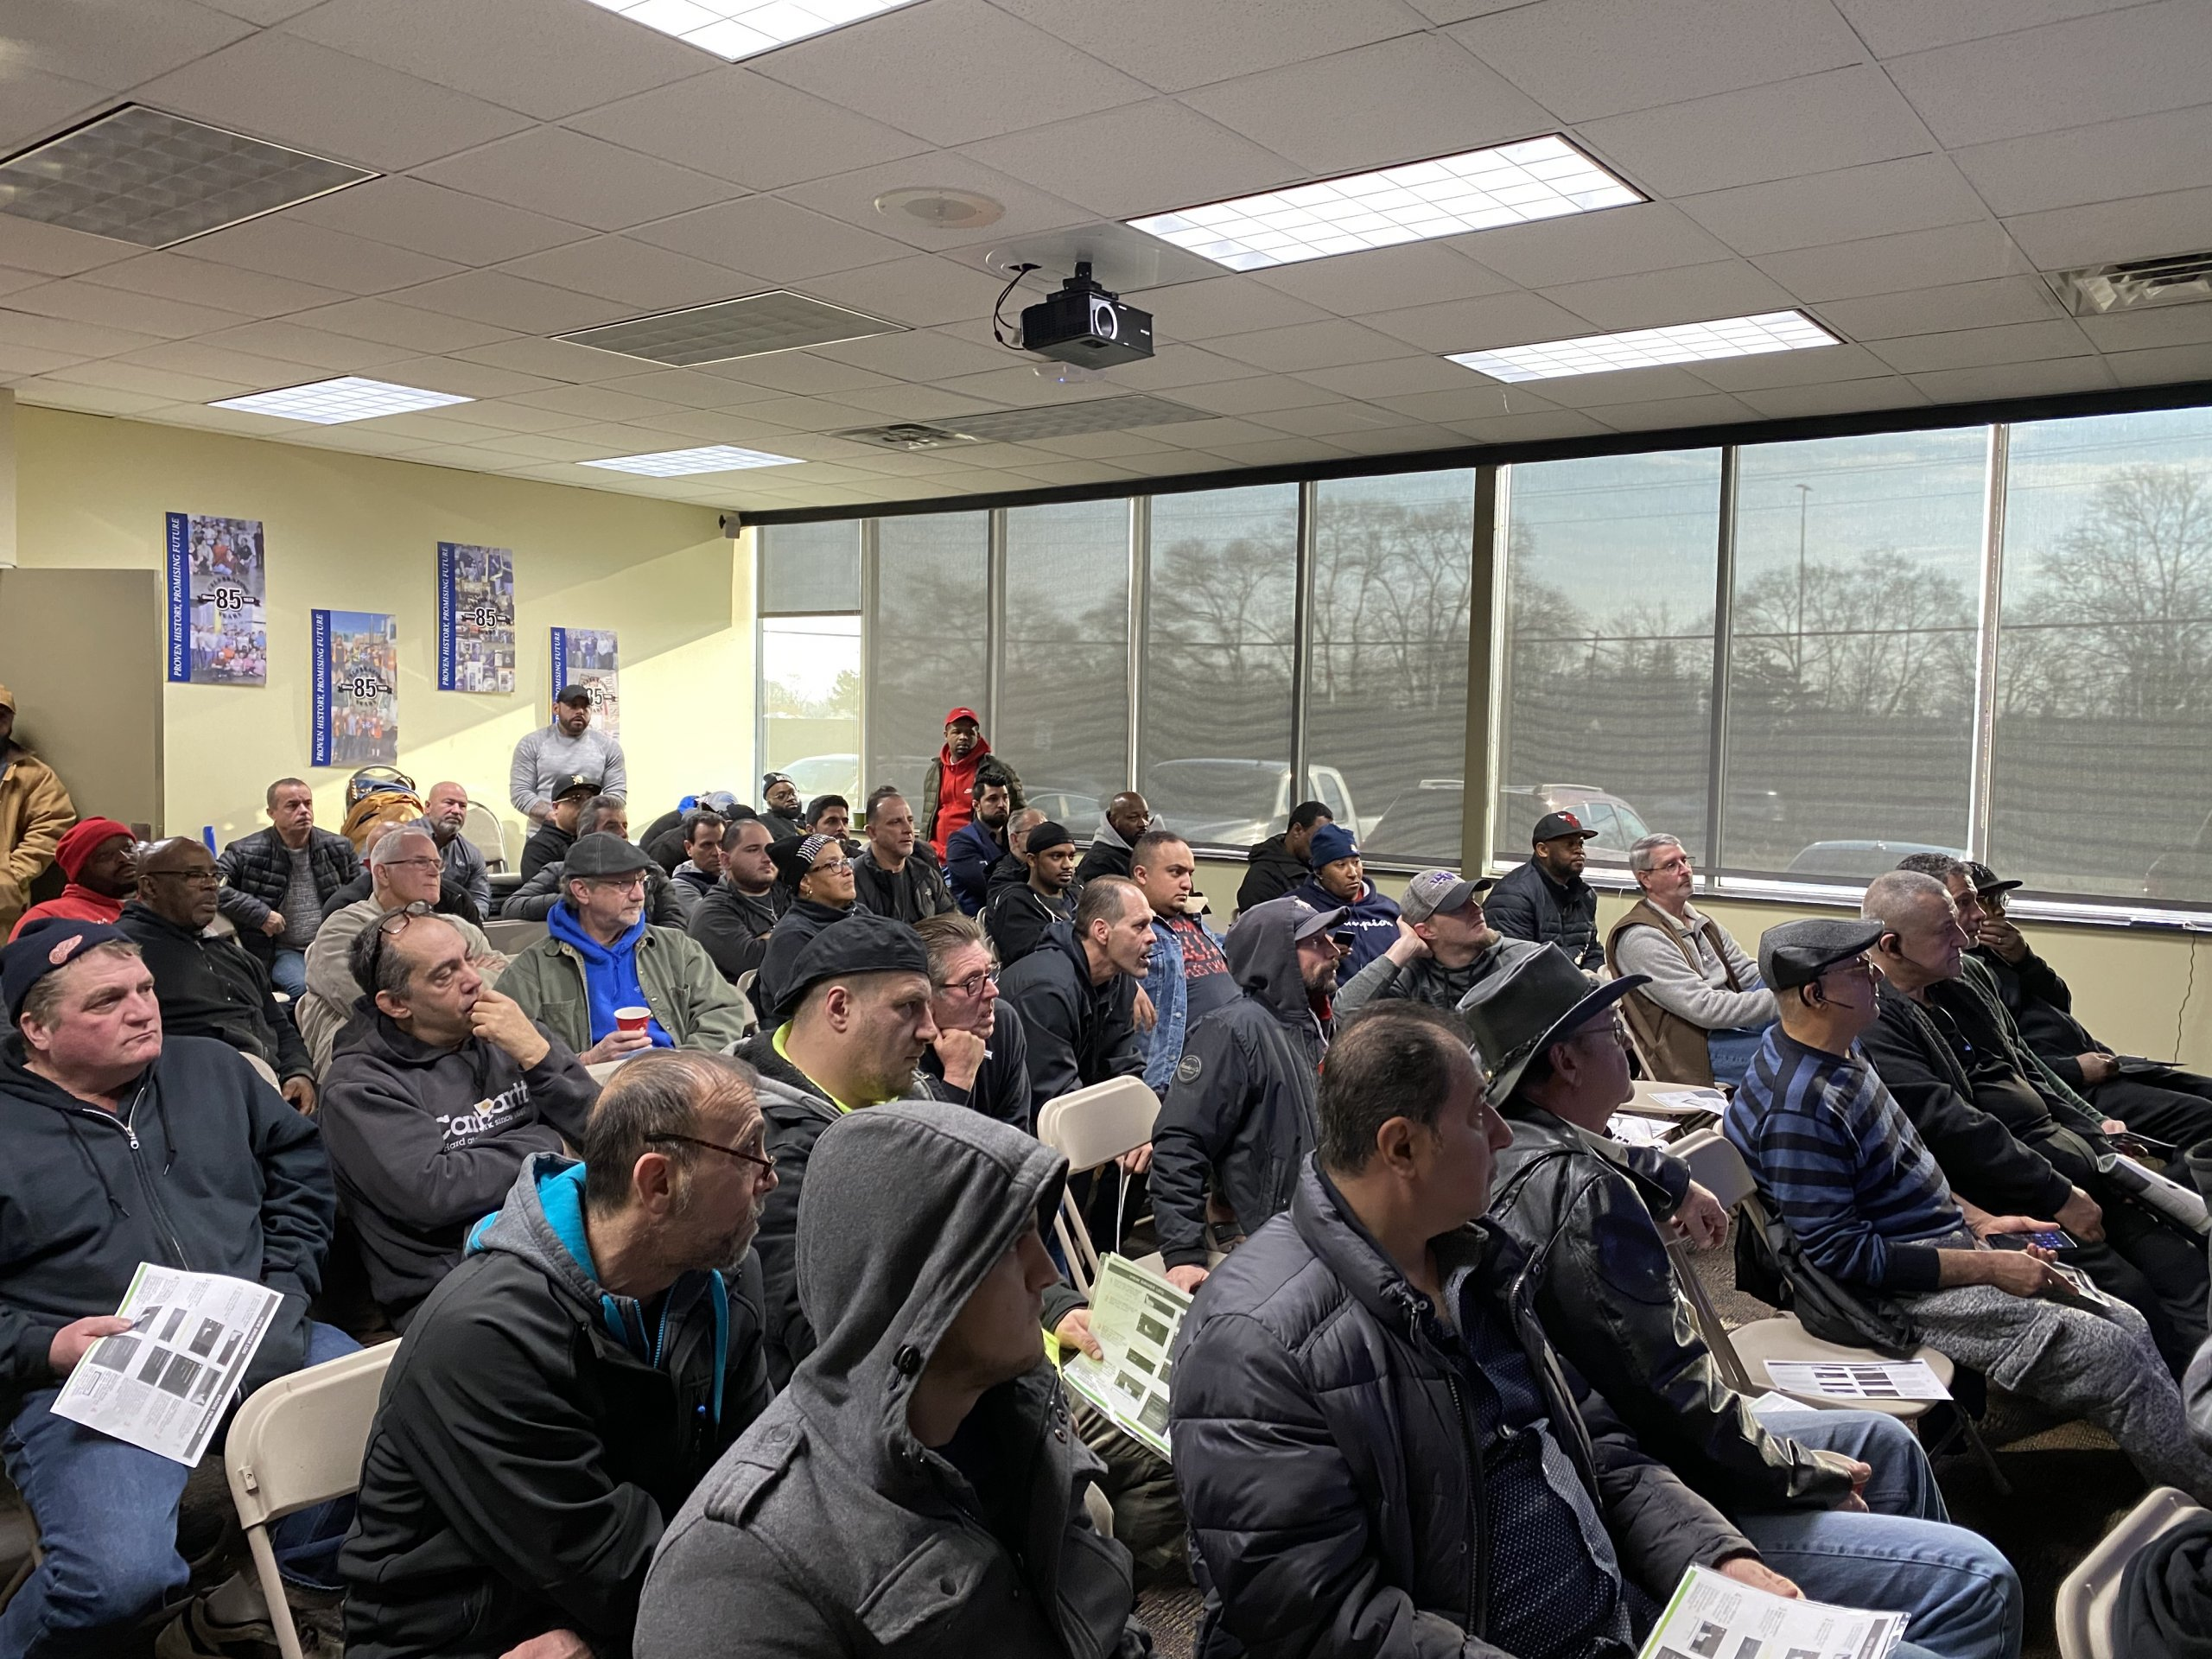 Evans Distribution Systems Hosts Driver Safety Meeting at Headquarters